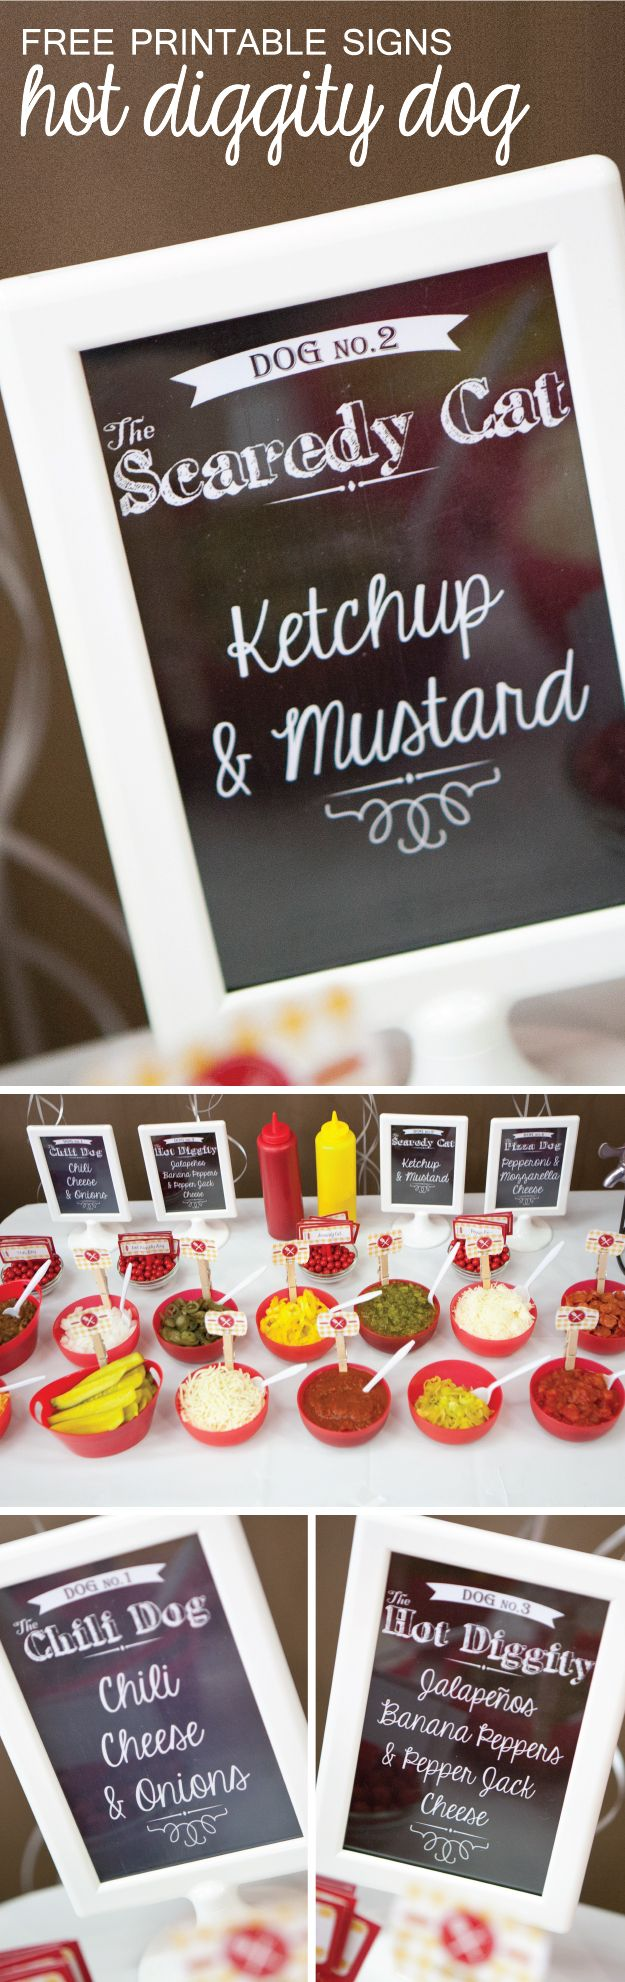 Hot Dog Party Supplies: Hot Diggity Dog Free Printable Signs